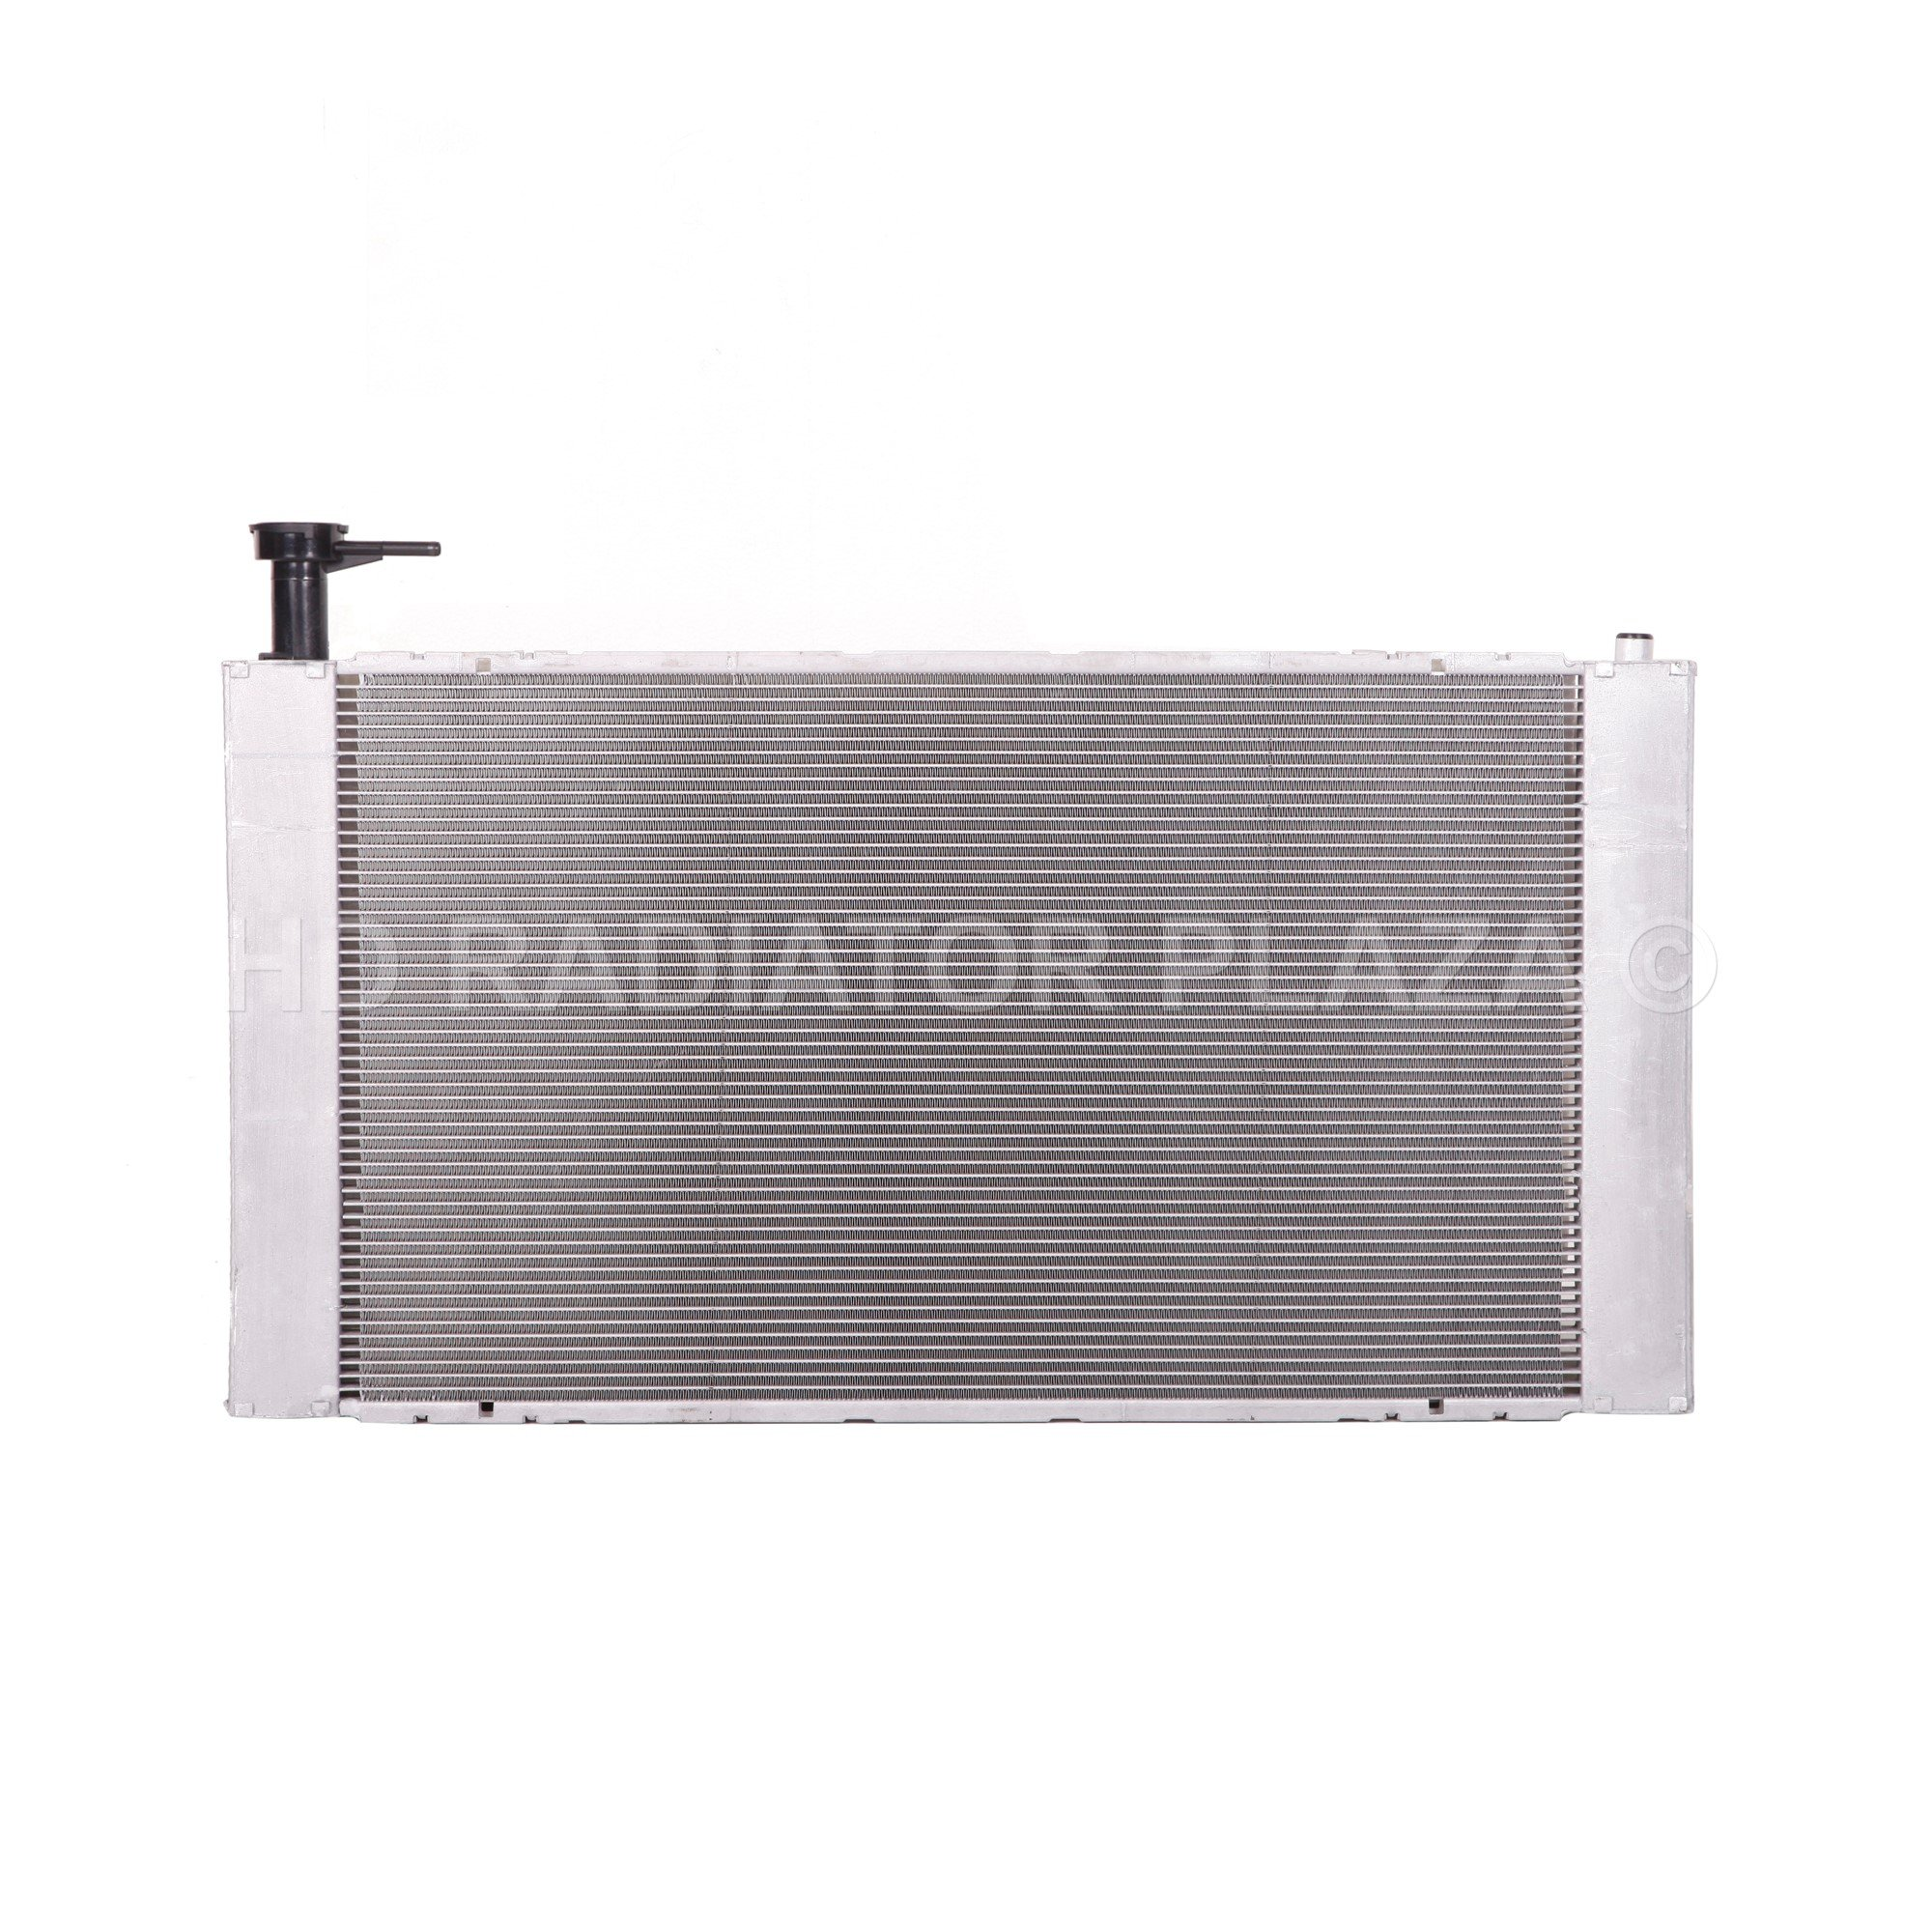 Radiator For 04-09 Toyota Prius 1.5L > Radiator Plaza